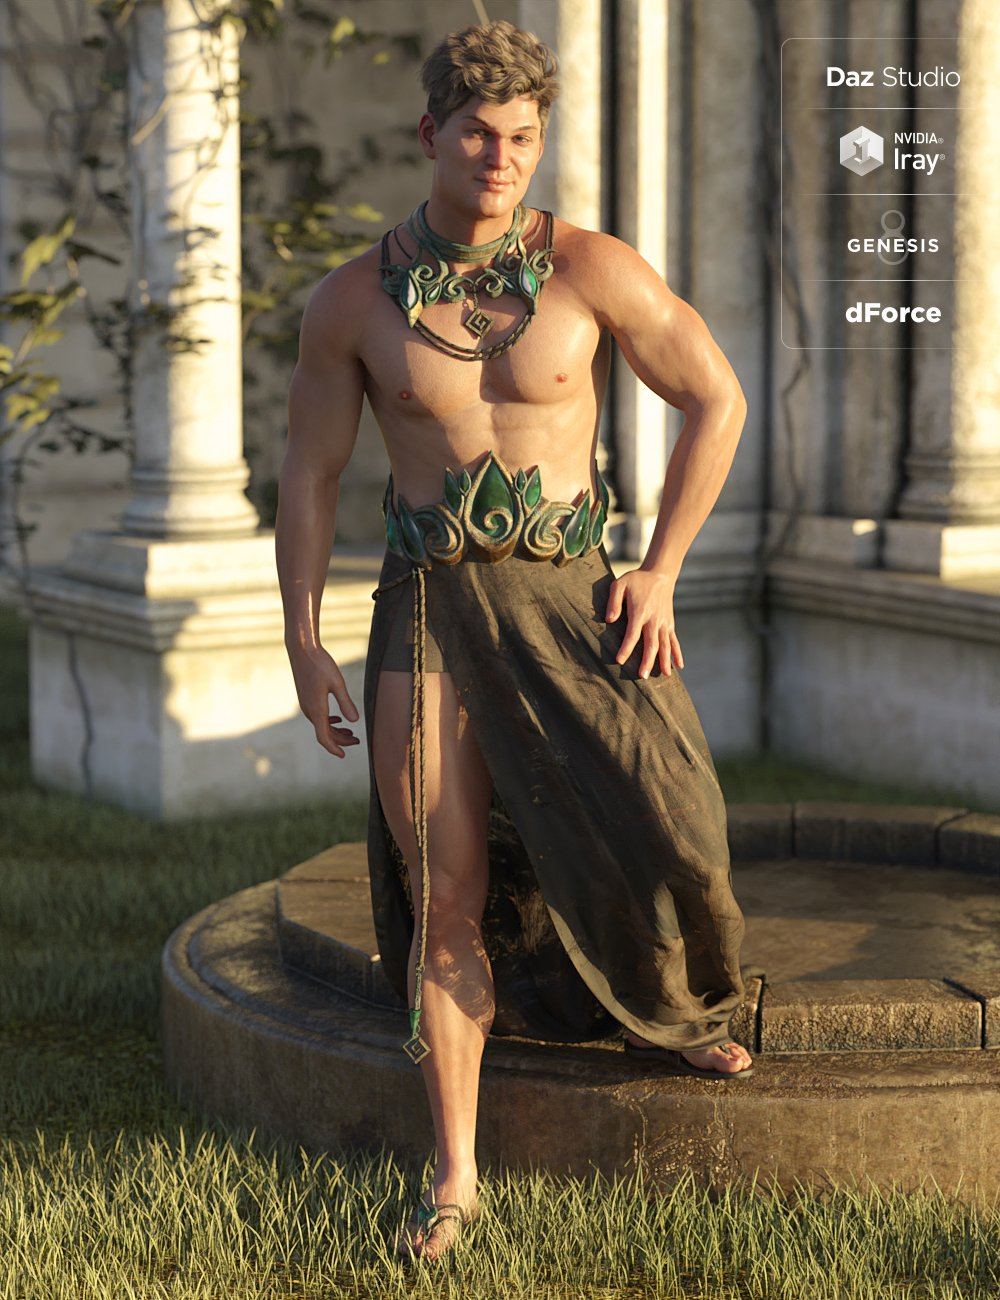 dForce Aegis Outfit for Genesis 8 Male(s) by: MadaMoonscape GraphicsSade, 3D Models by Daz 3D